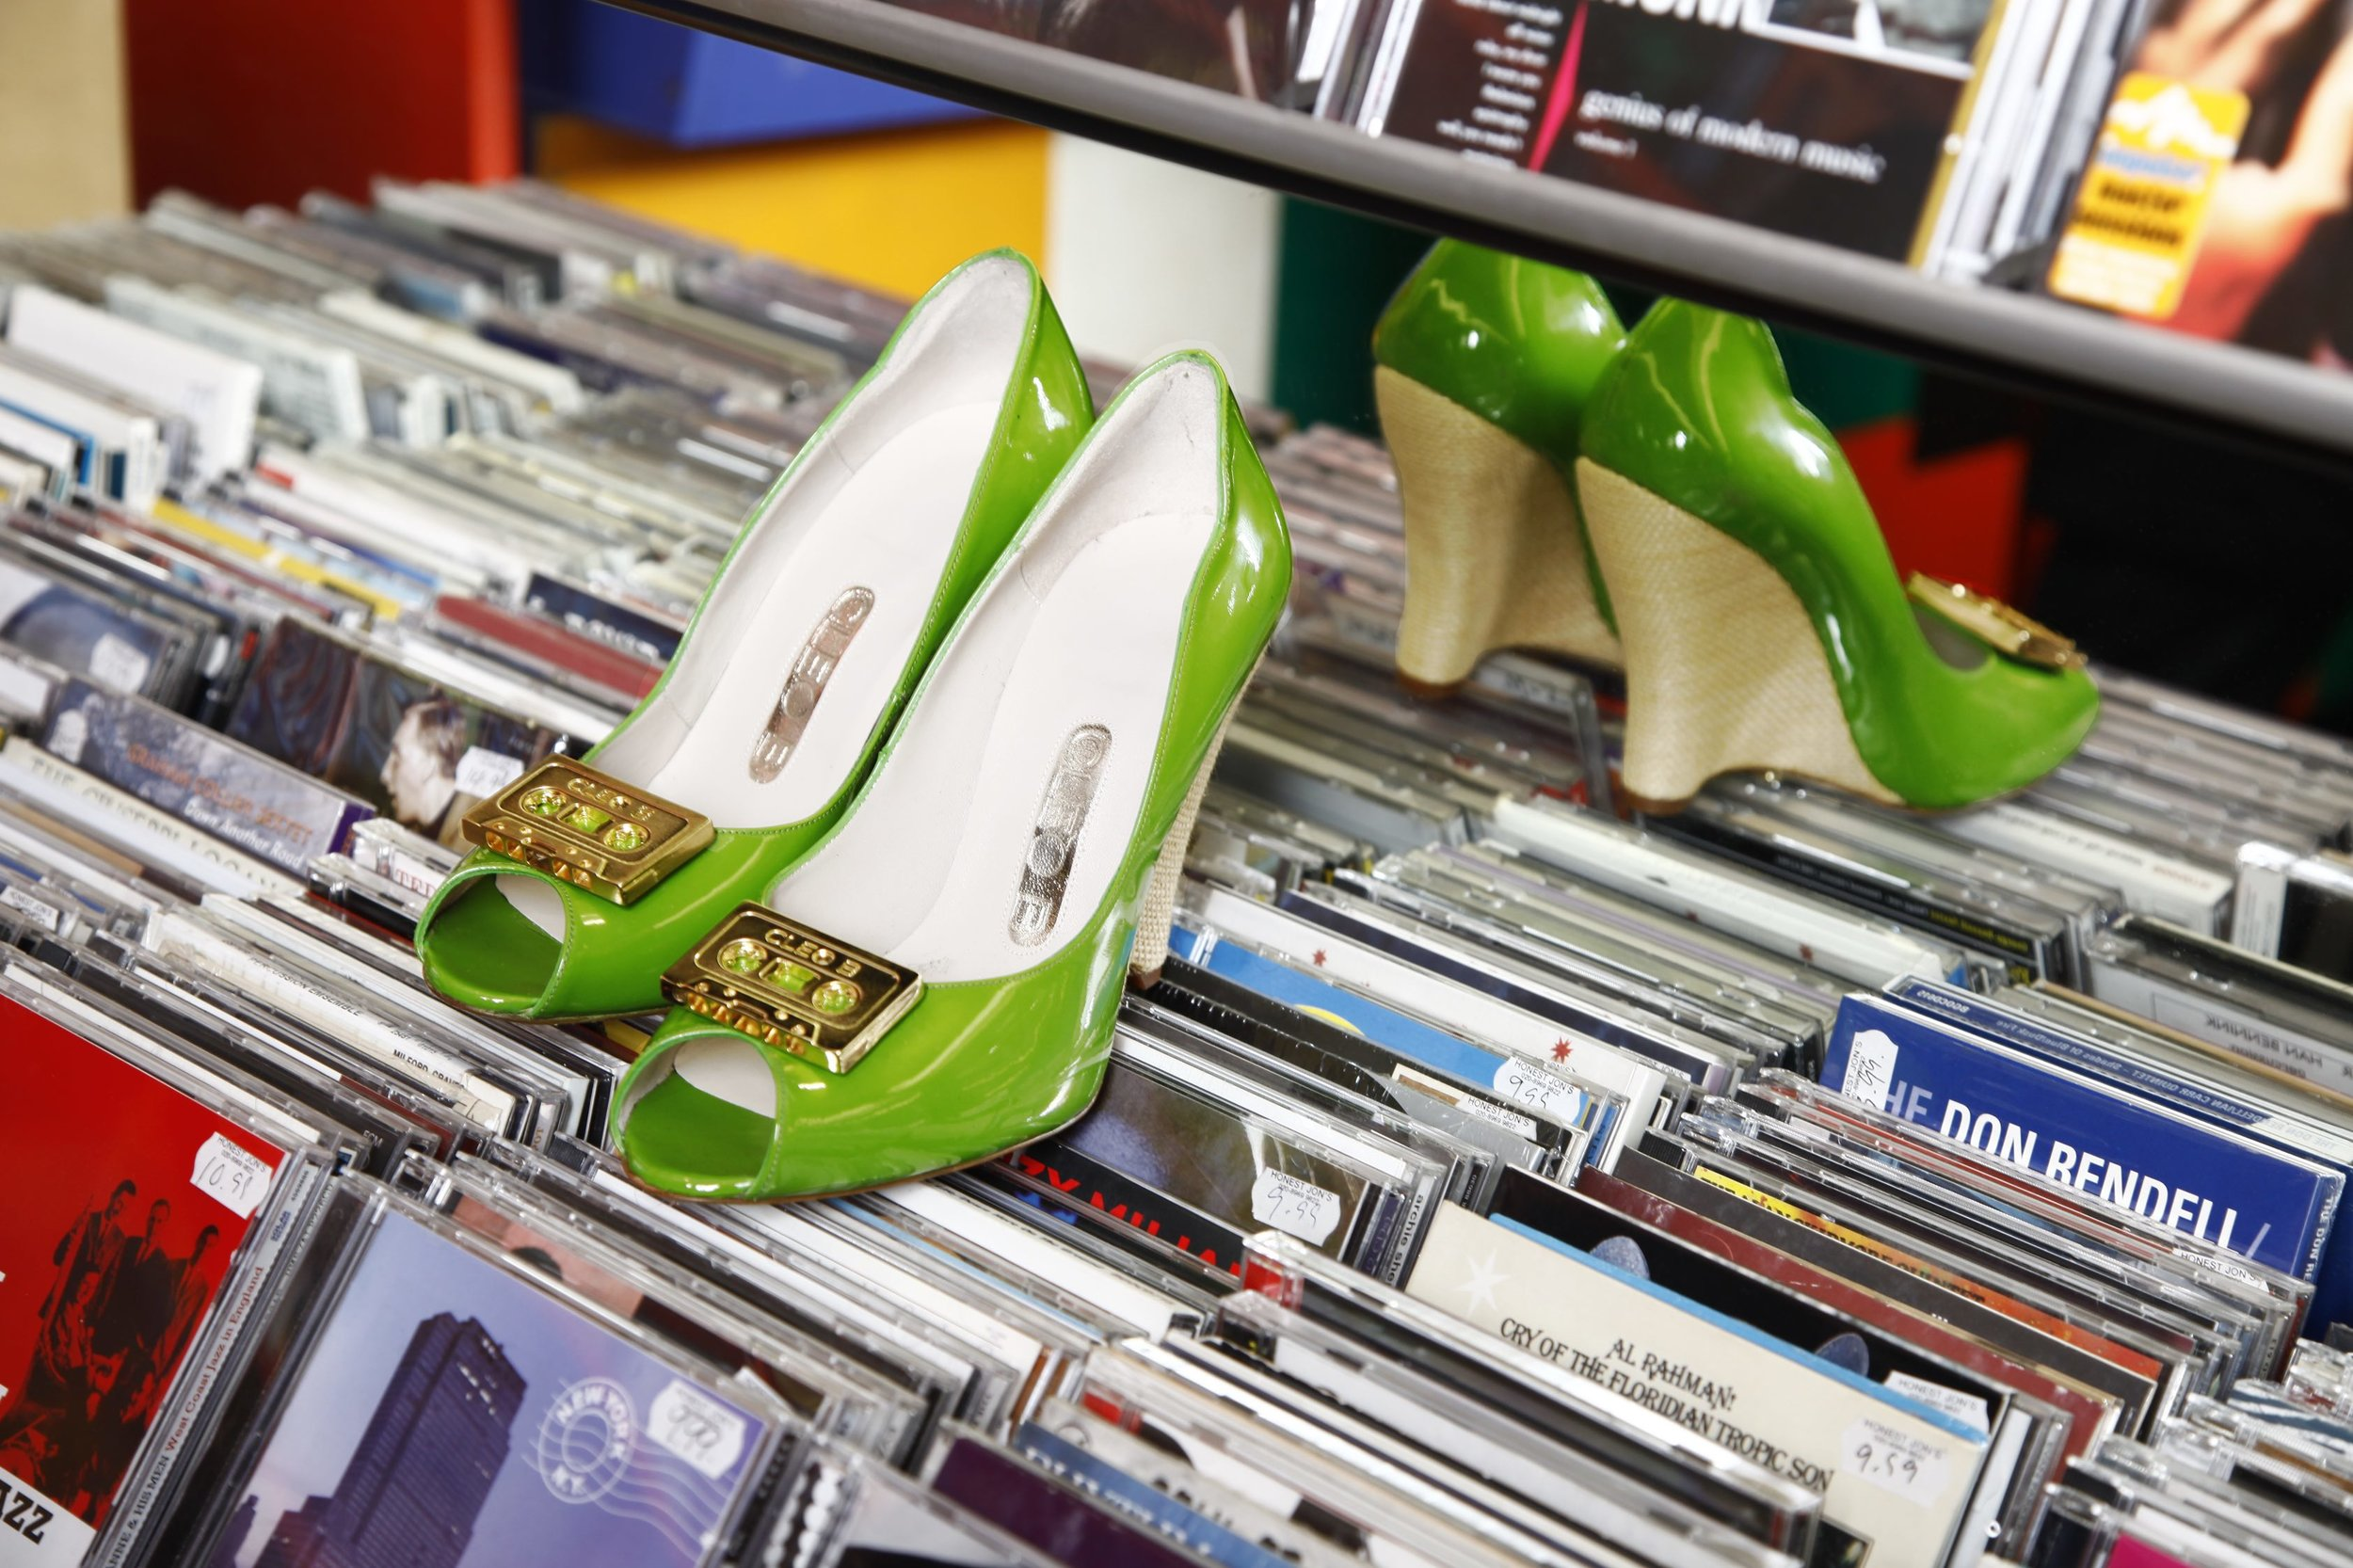 WEDGES-CASSETTE-ACCESSORY